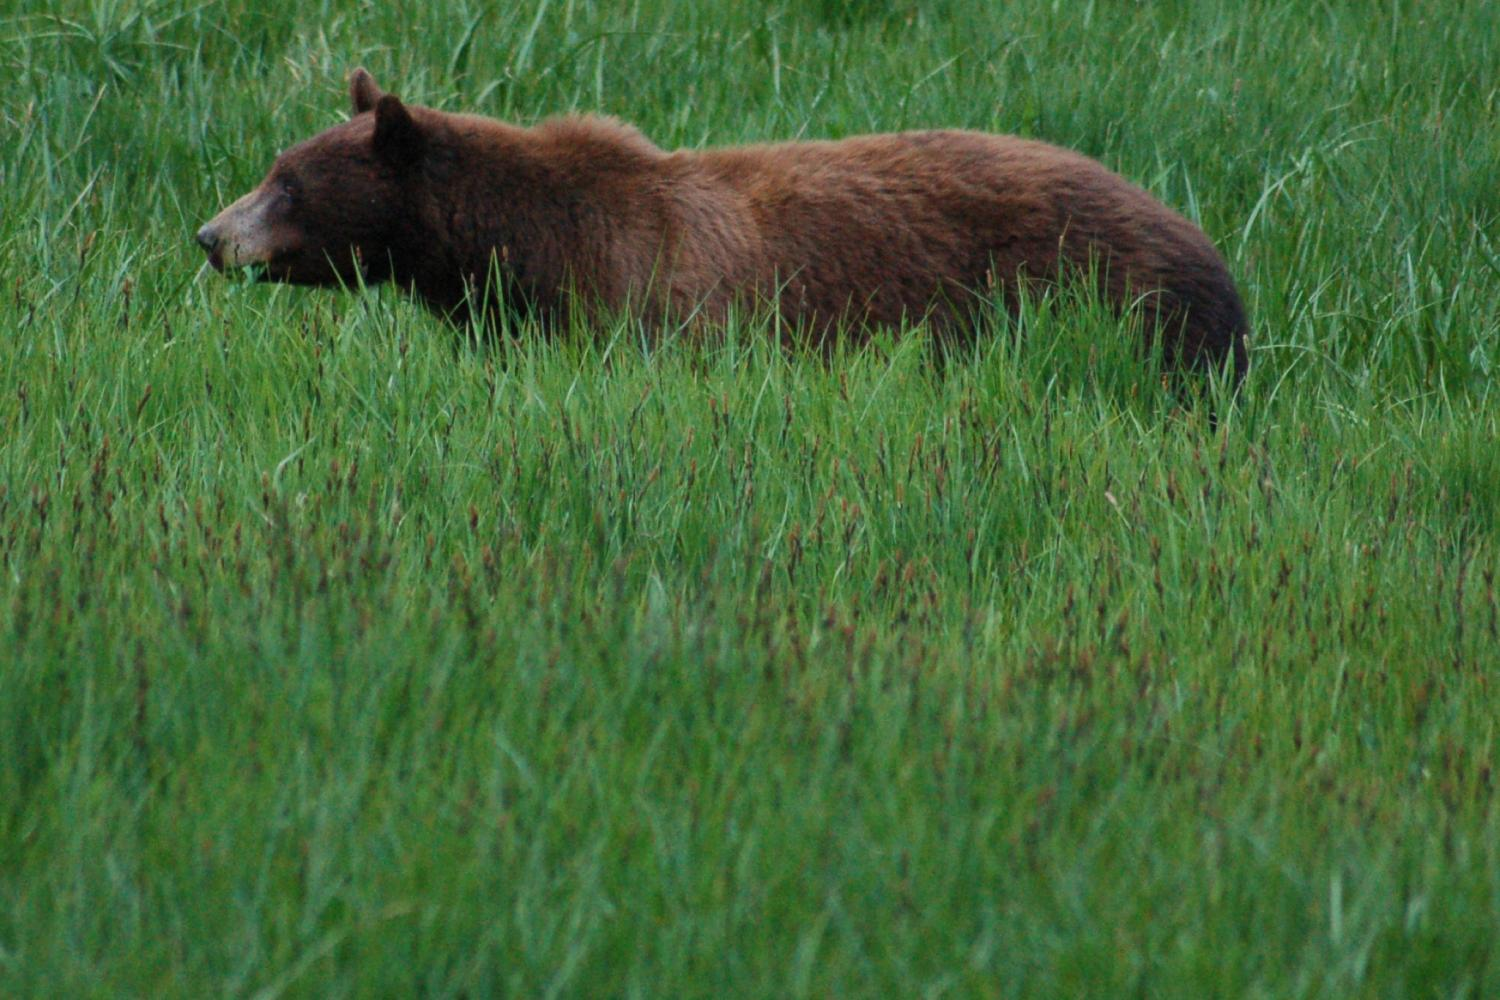 A black bear eats grass in Yosemite National Park. Courtesy Ed Coyle Photography